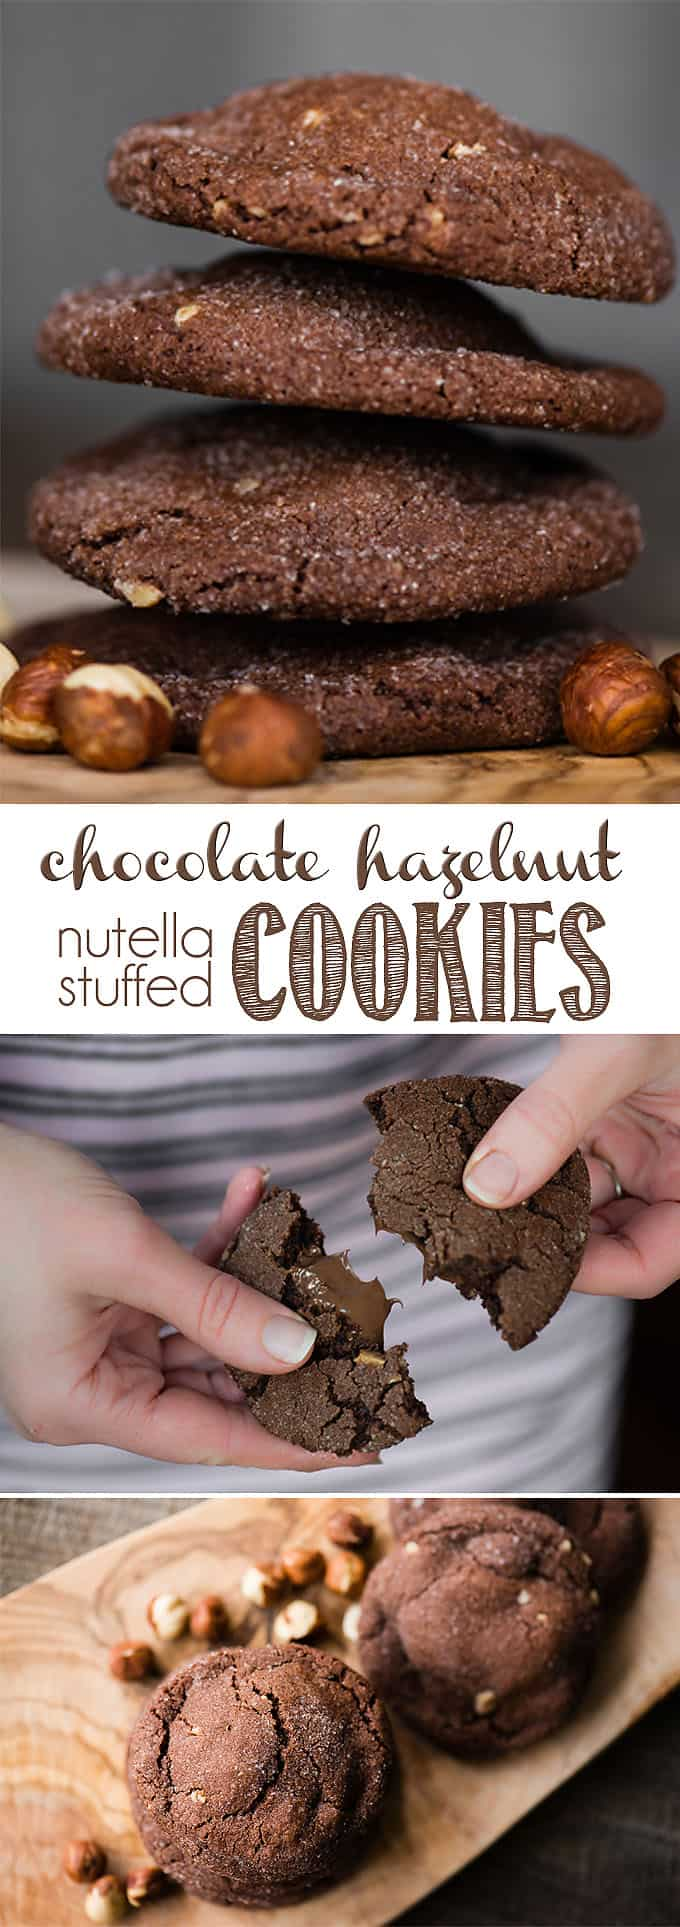 Chocolate Hazelnut Nutella Stuffed Cookies combine a homemade chewy chocolate hazelnut cookie that is wrapped around a melted mouthful of creamy Nutella. These rich and decadent cookies with a surprise in the middle are perfect any time of year, but are extra loved during the holidays. Warm or cold, they're delicious! #chocolate #hazelnut #nutella #cookies #stuffed #stuffedcookies